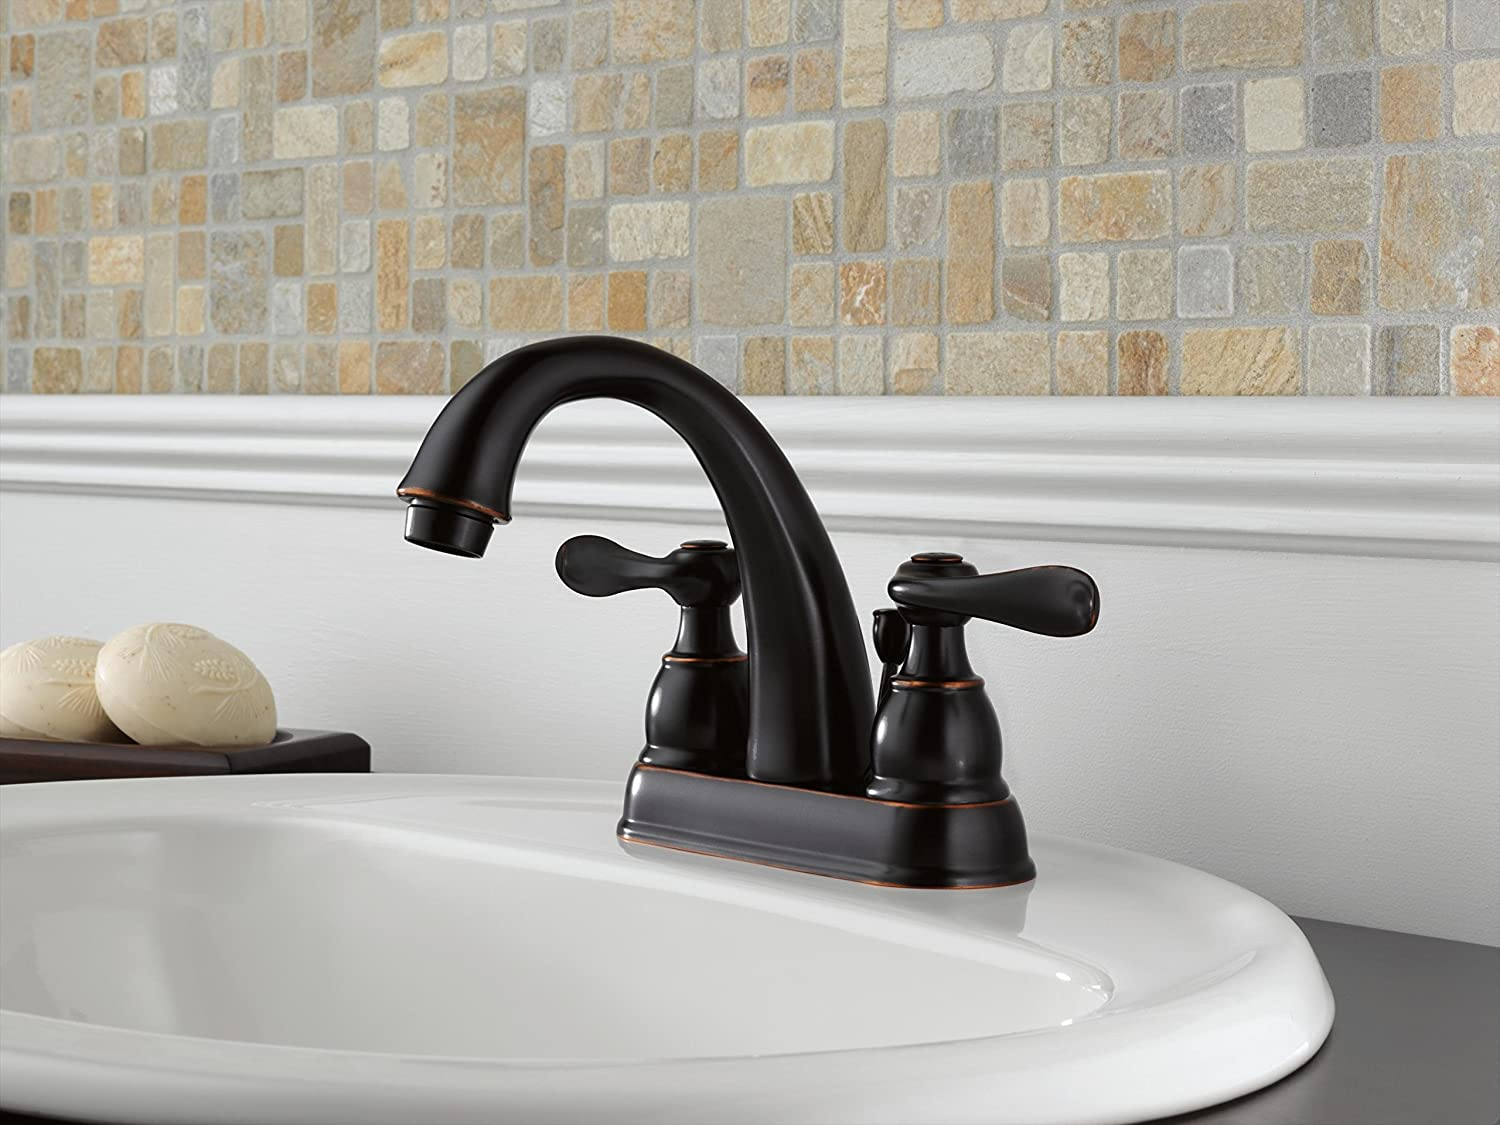 Delta Windemere B2596LF OB Two Handle Centerset Bathroom Faucet, Oil Bronze    Touch On Bathroom Sink Faucets   Amazon.com